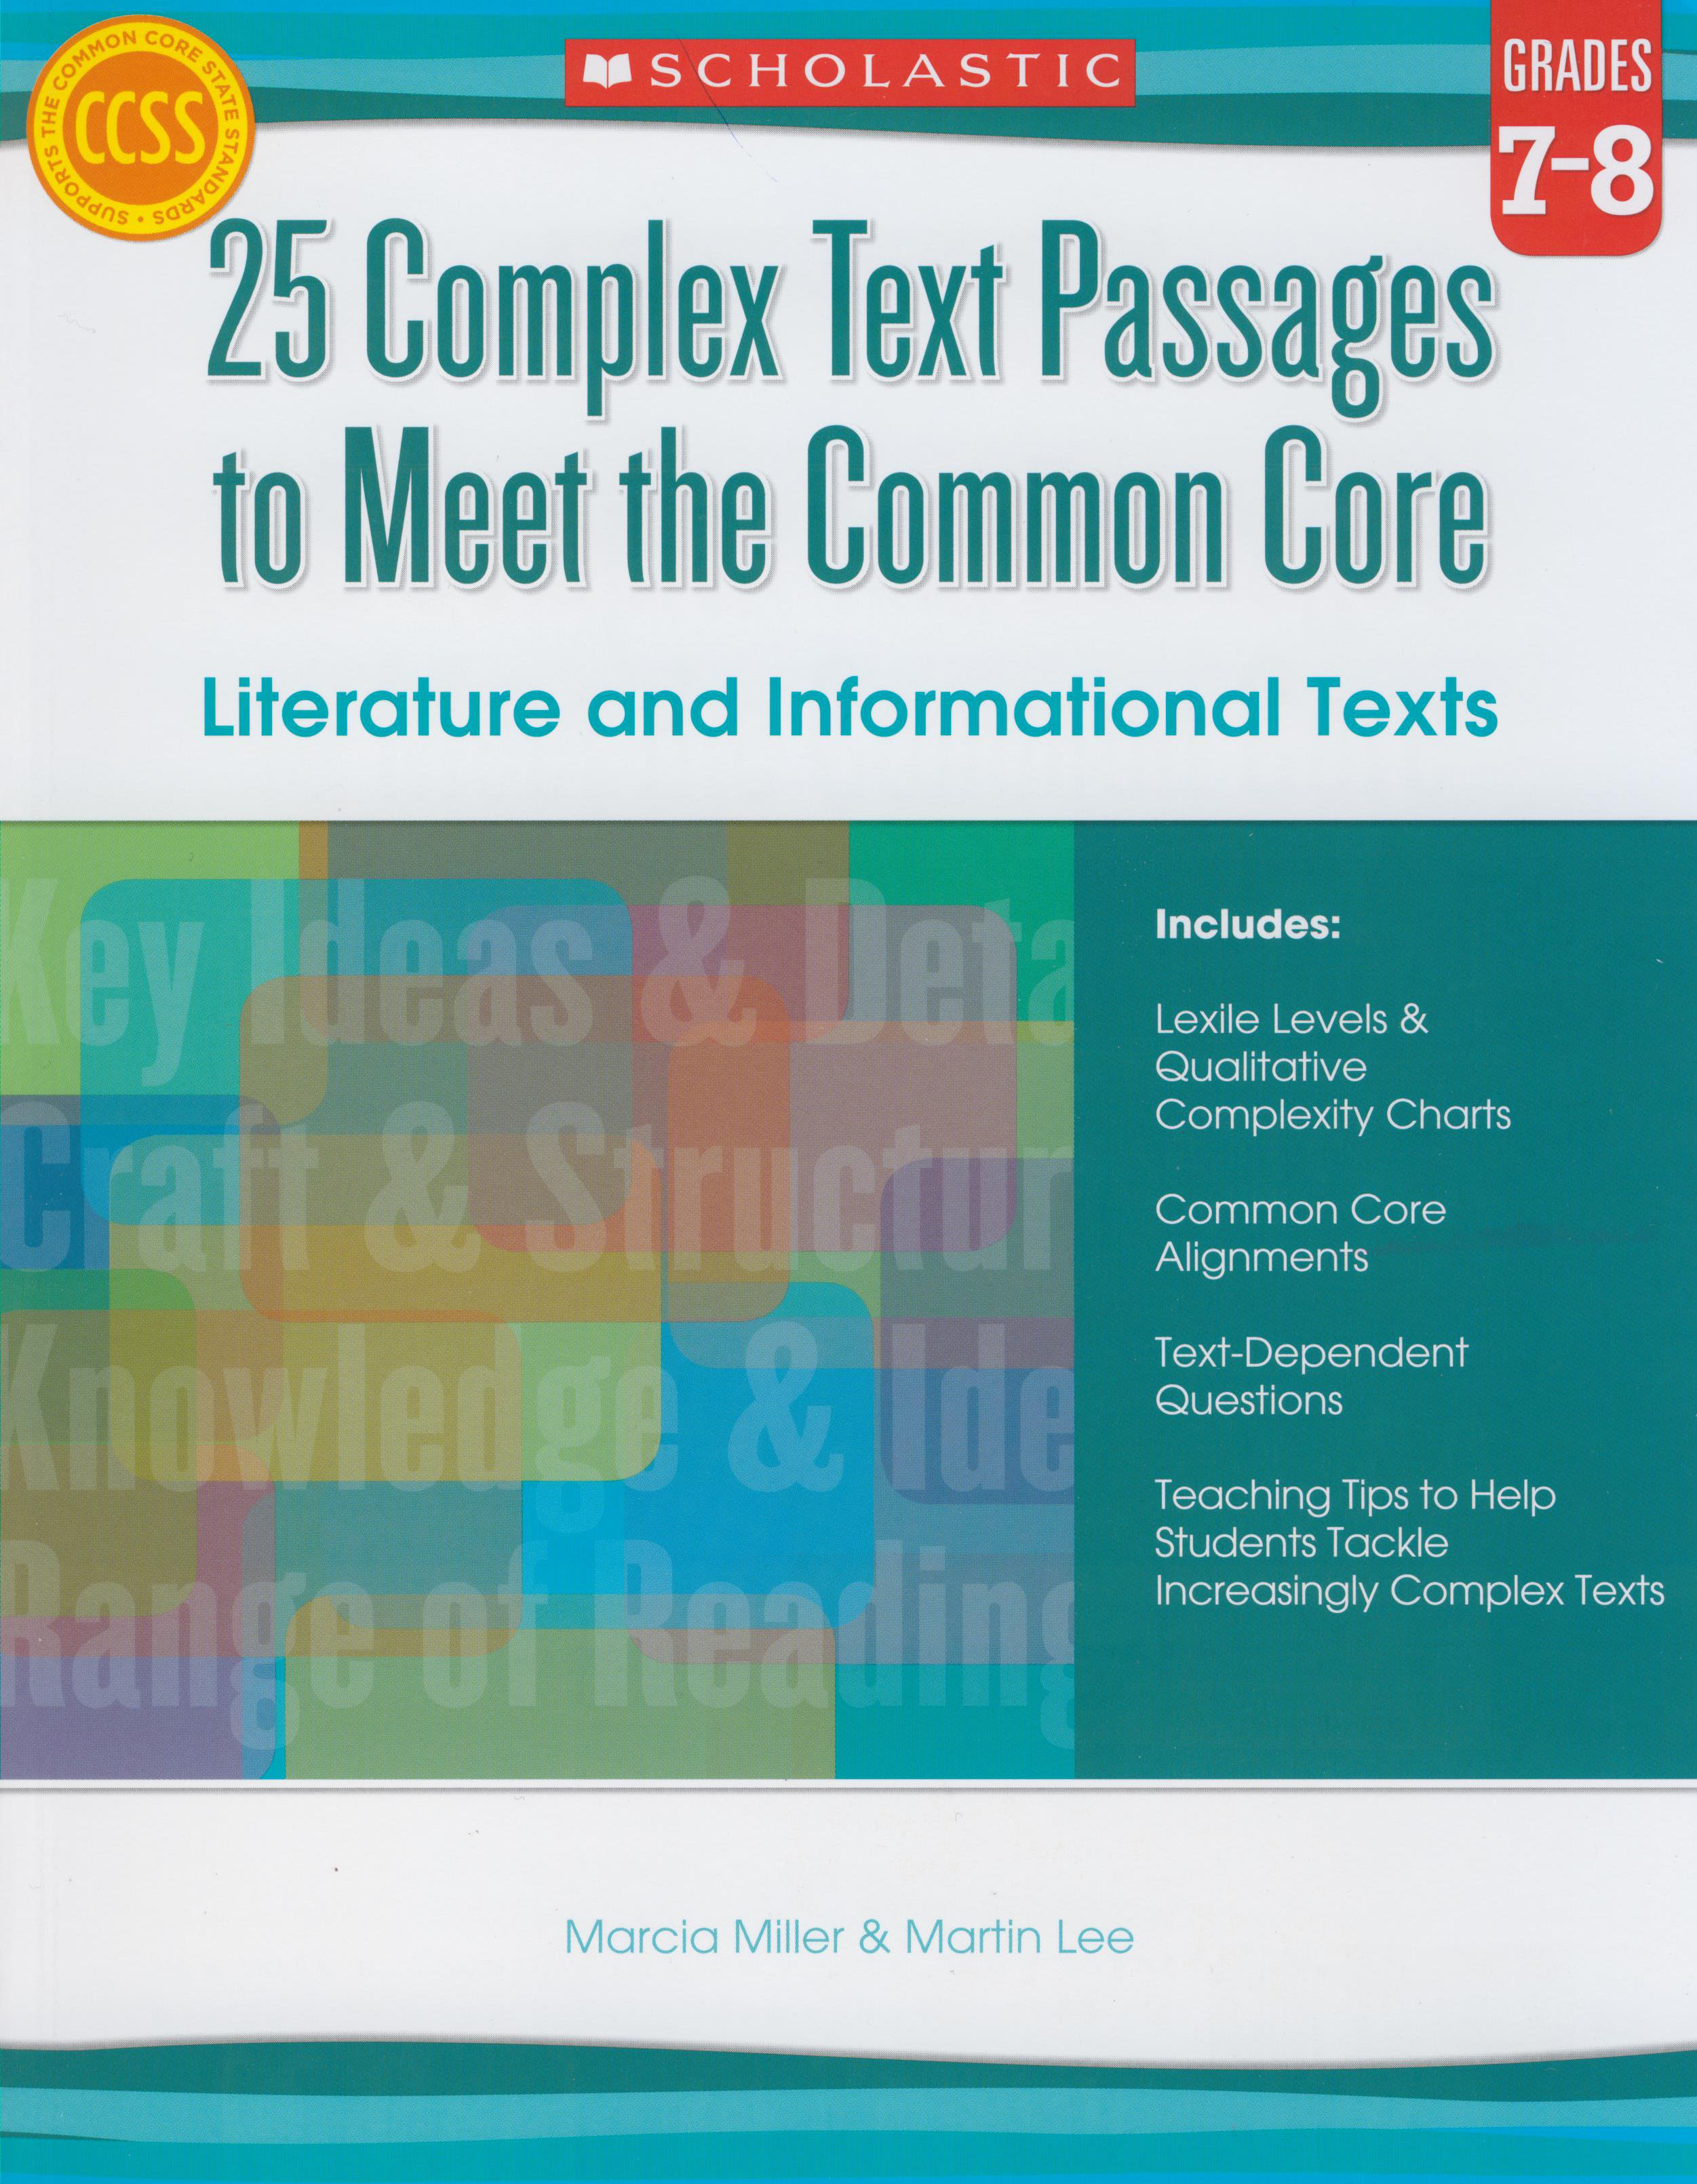 25 Complex Text Passages to Meet the Common Core Reproducible Book